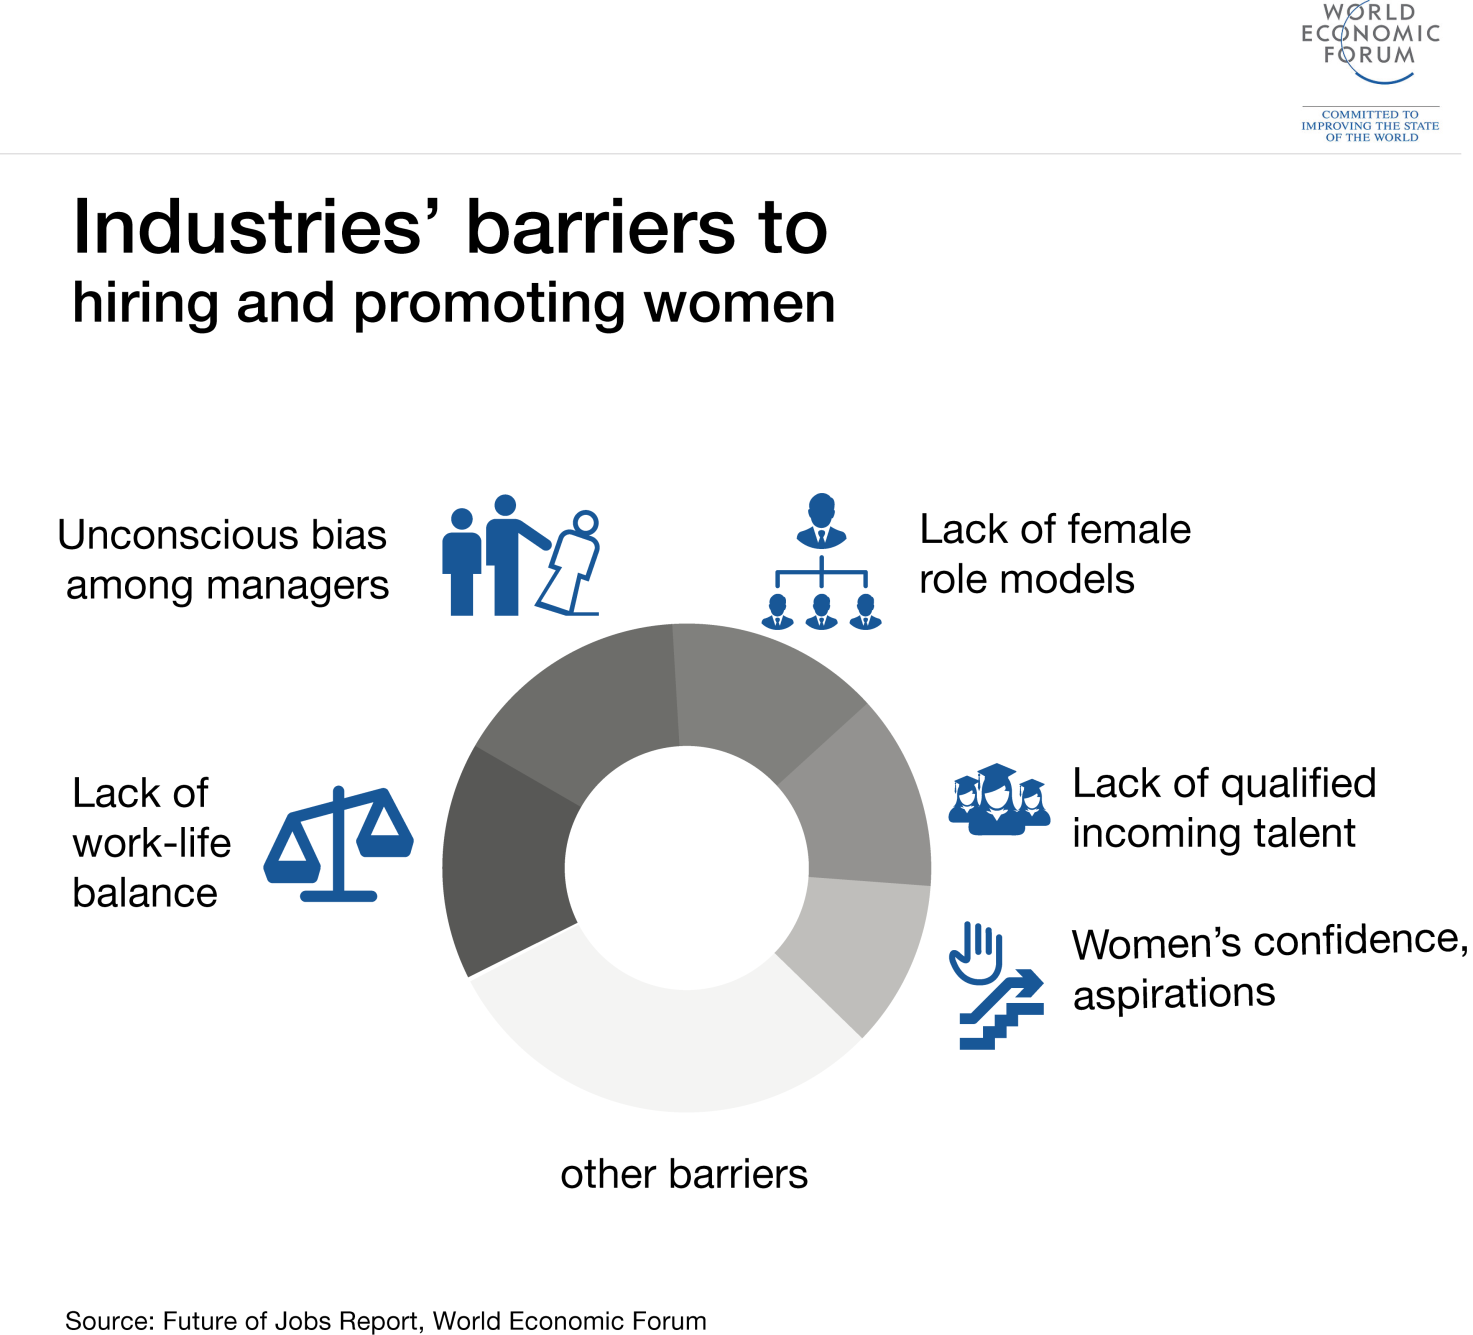 Industries' barriers to hiring and promoting women